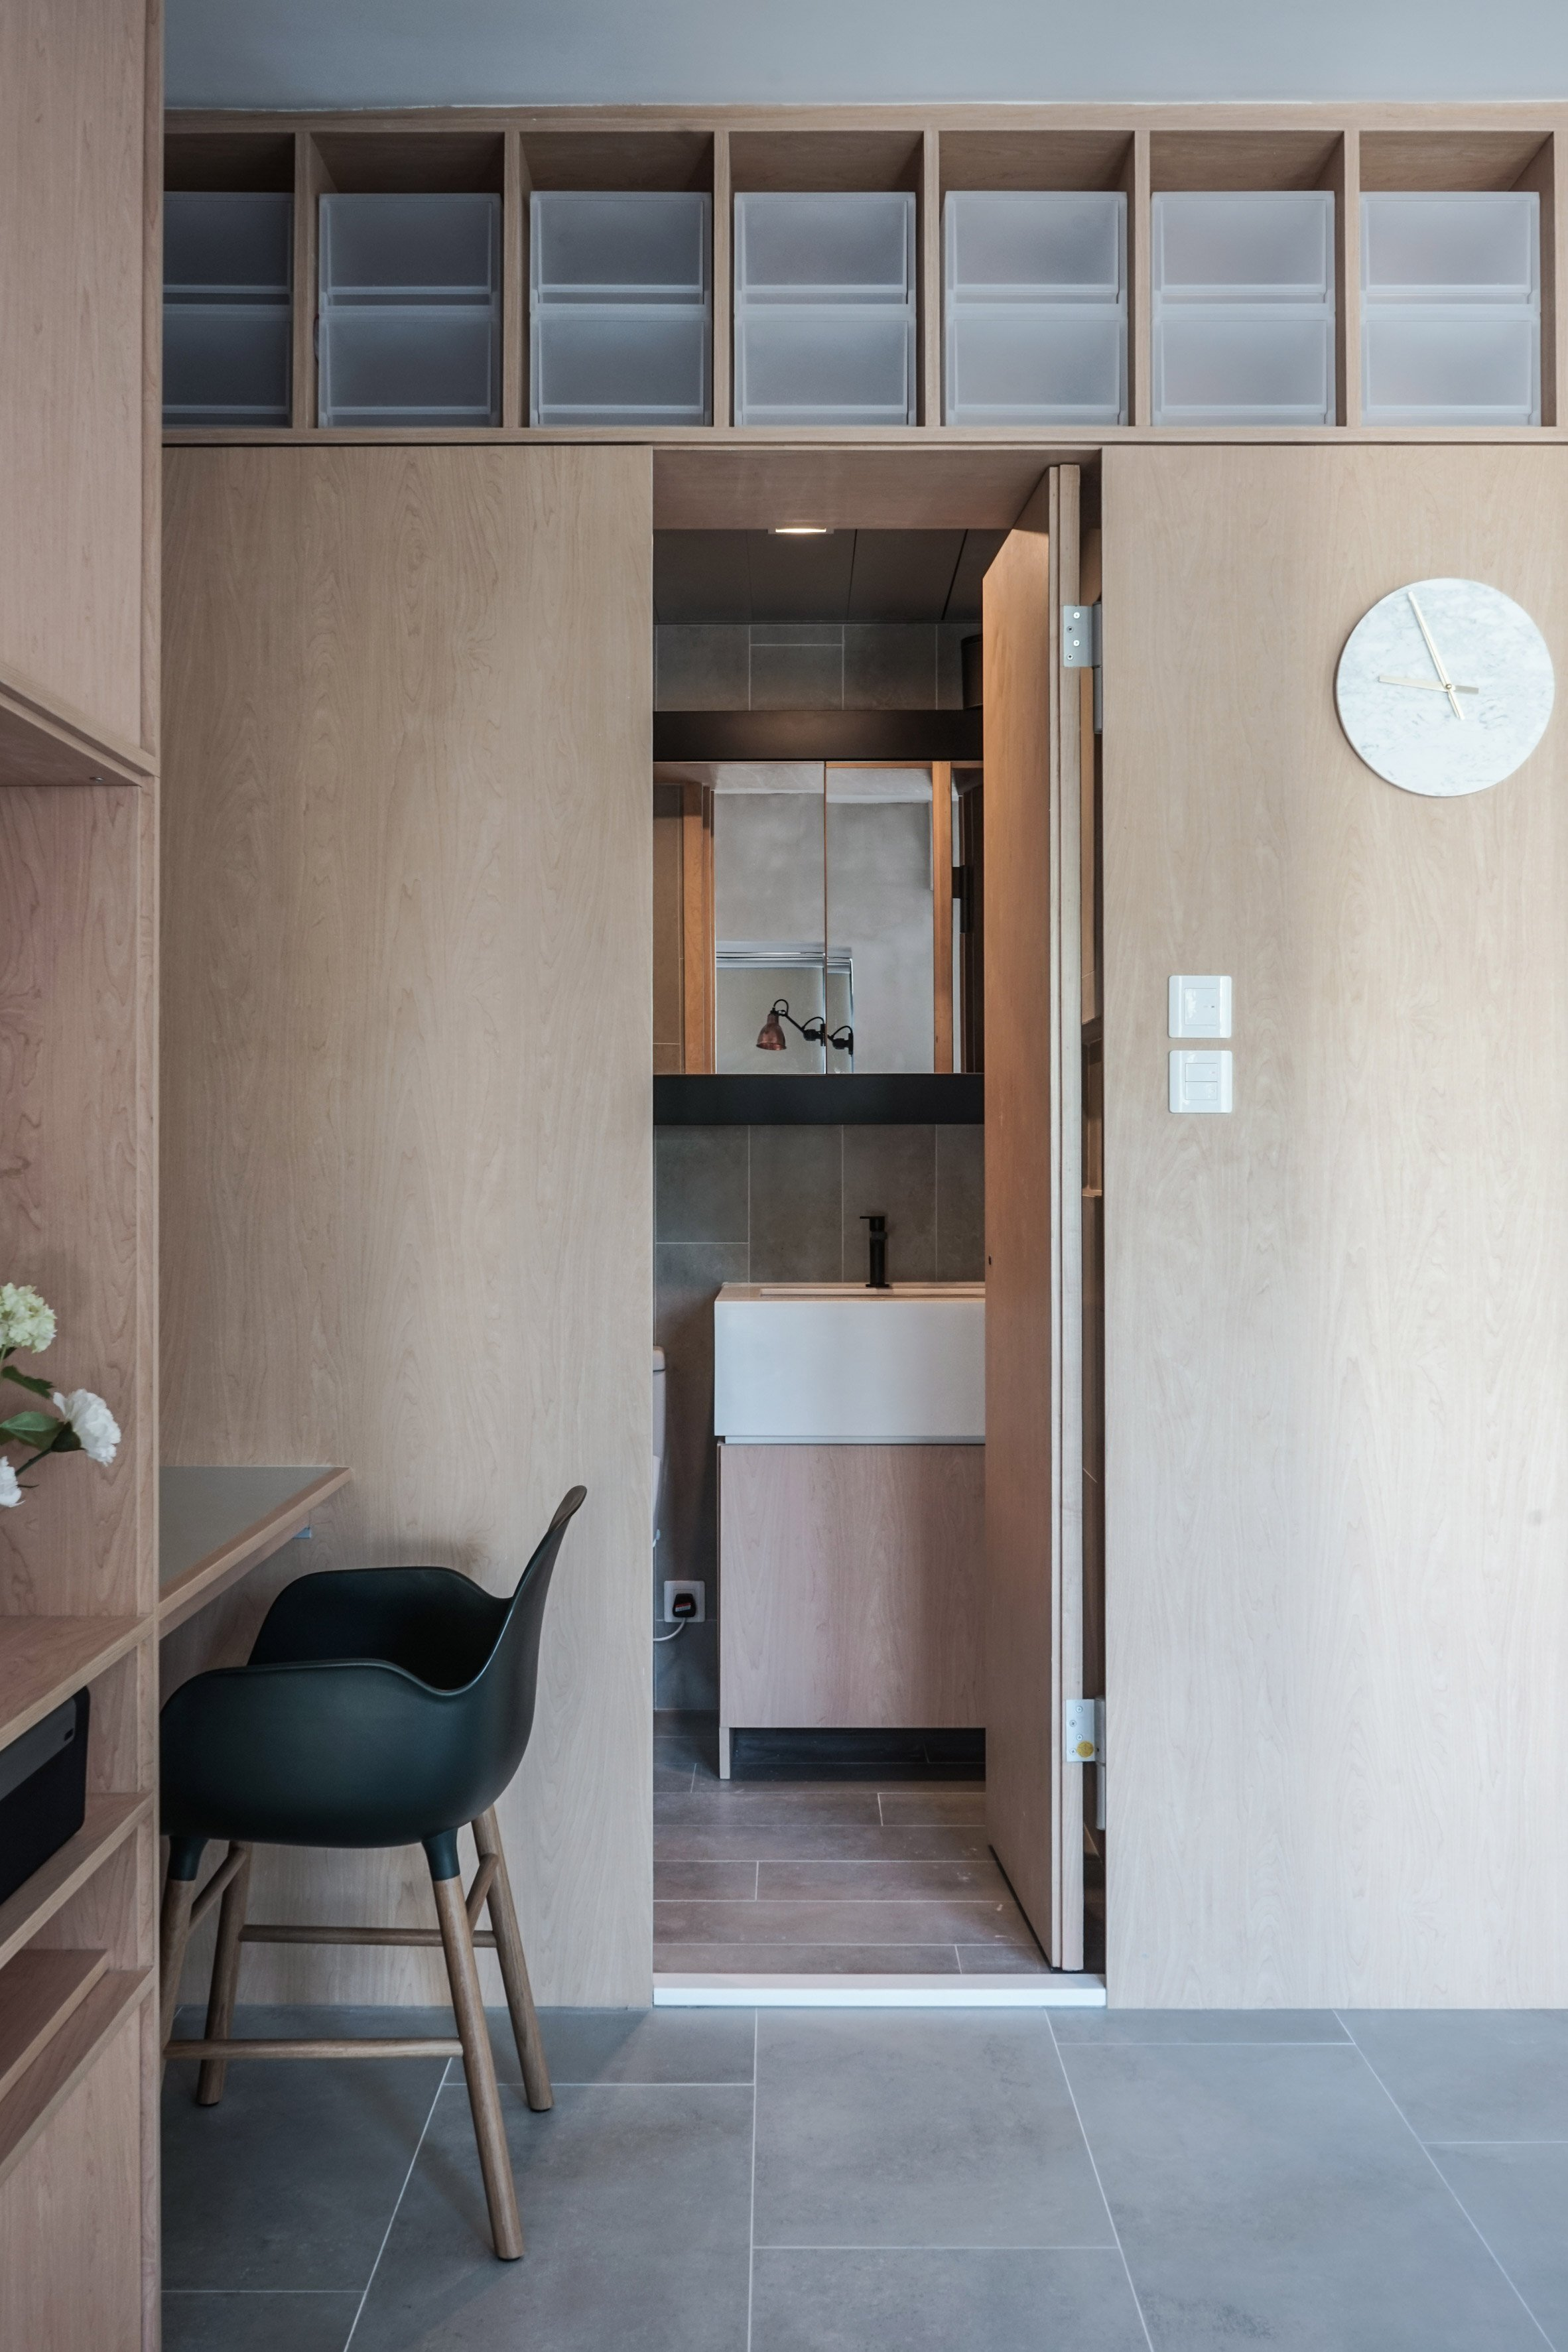 kevin-apartment-jaak-hong-kong-bathroom-humble-homes